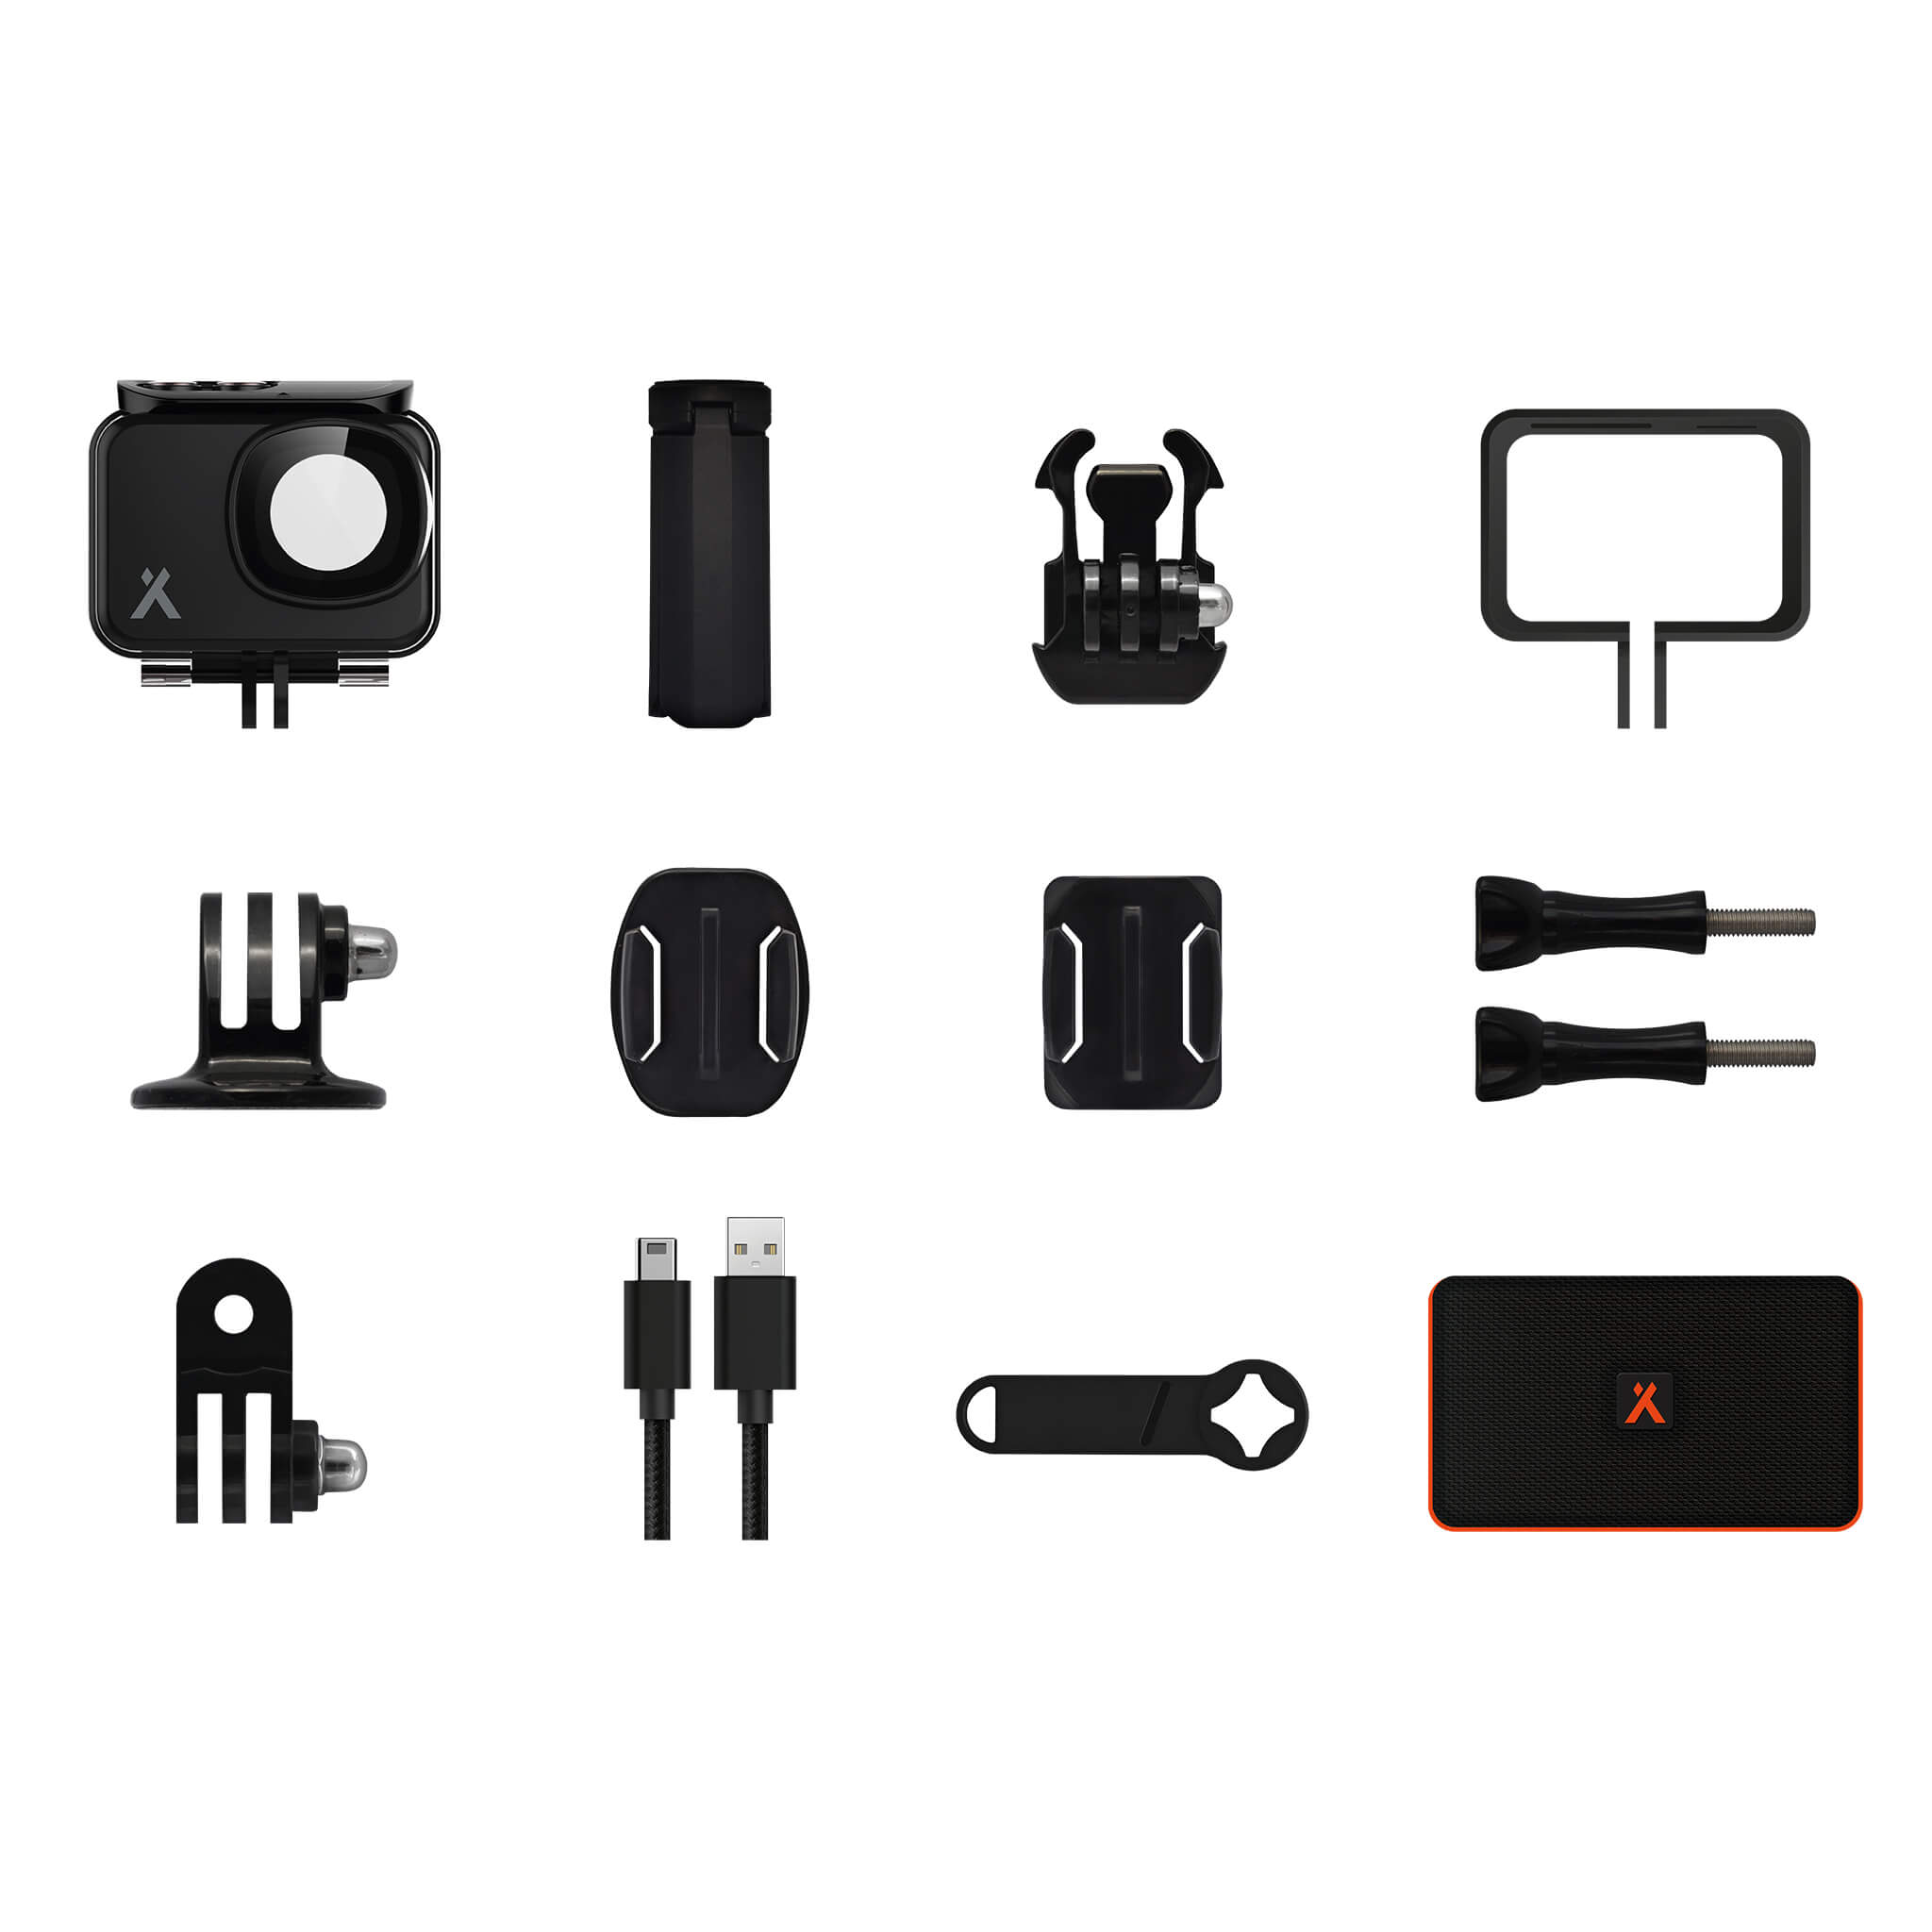 Many accessories come included with the Bear Grylls HD Action Camera